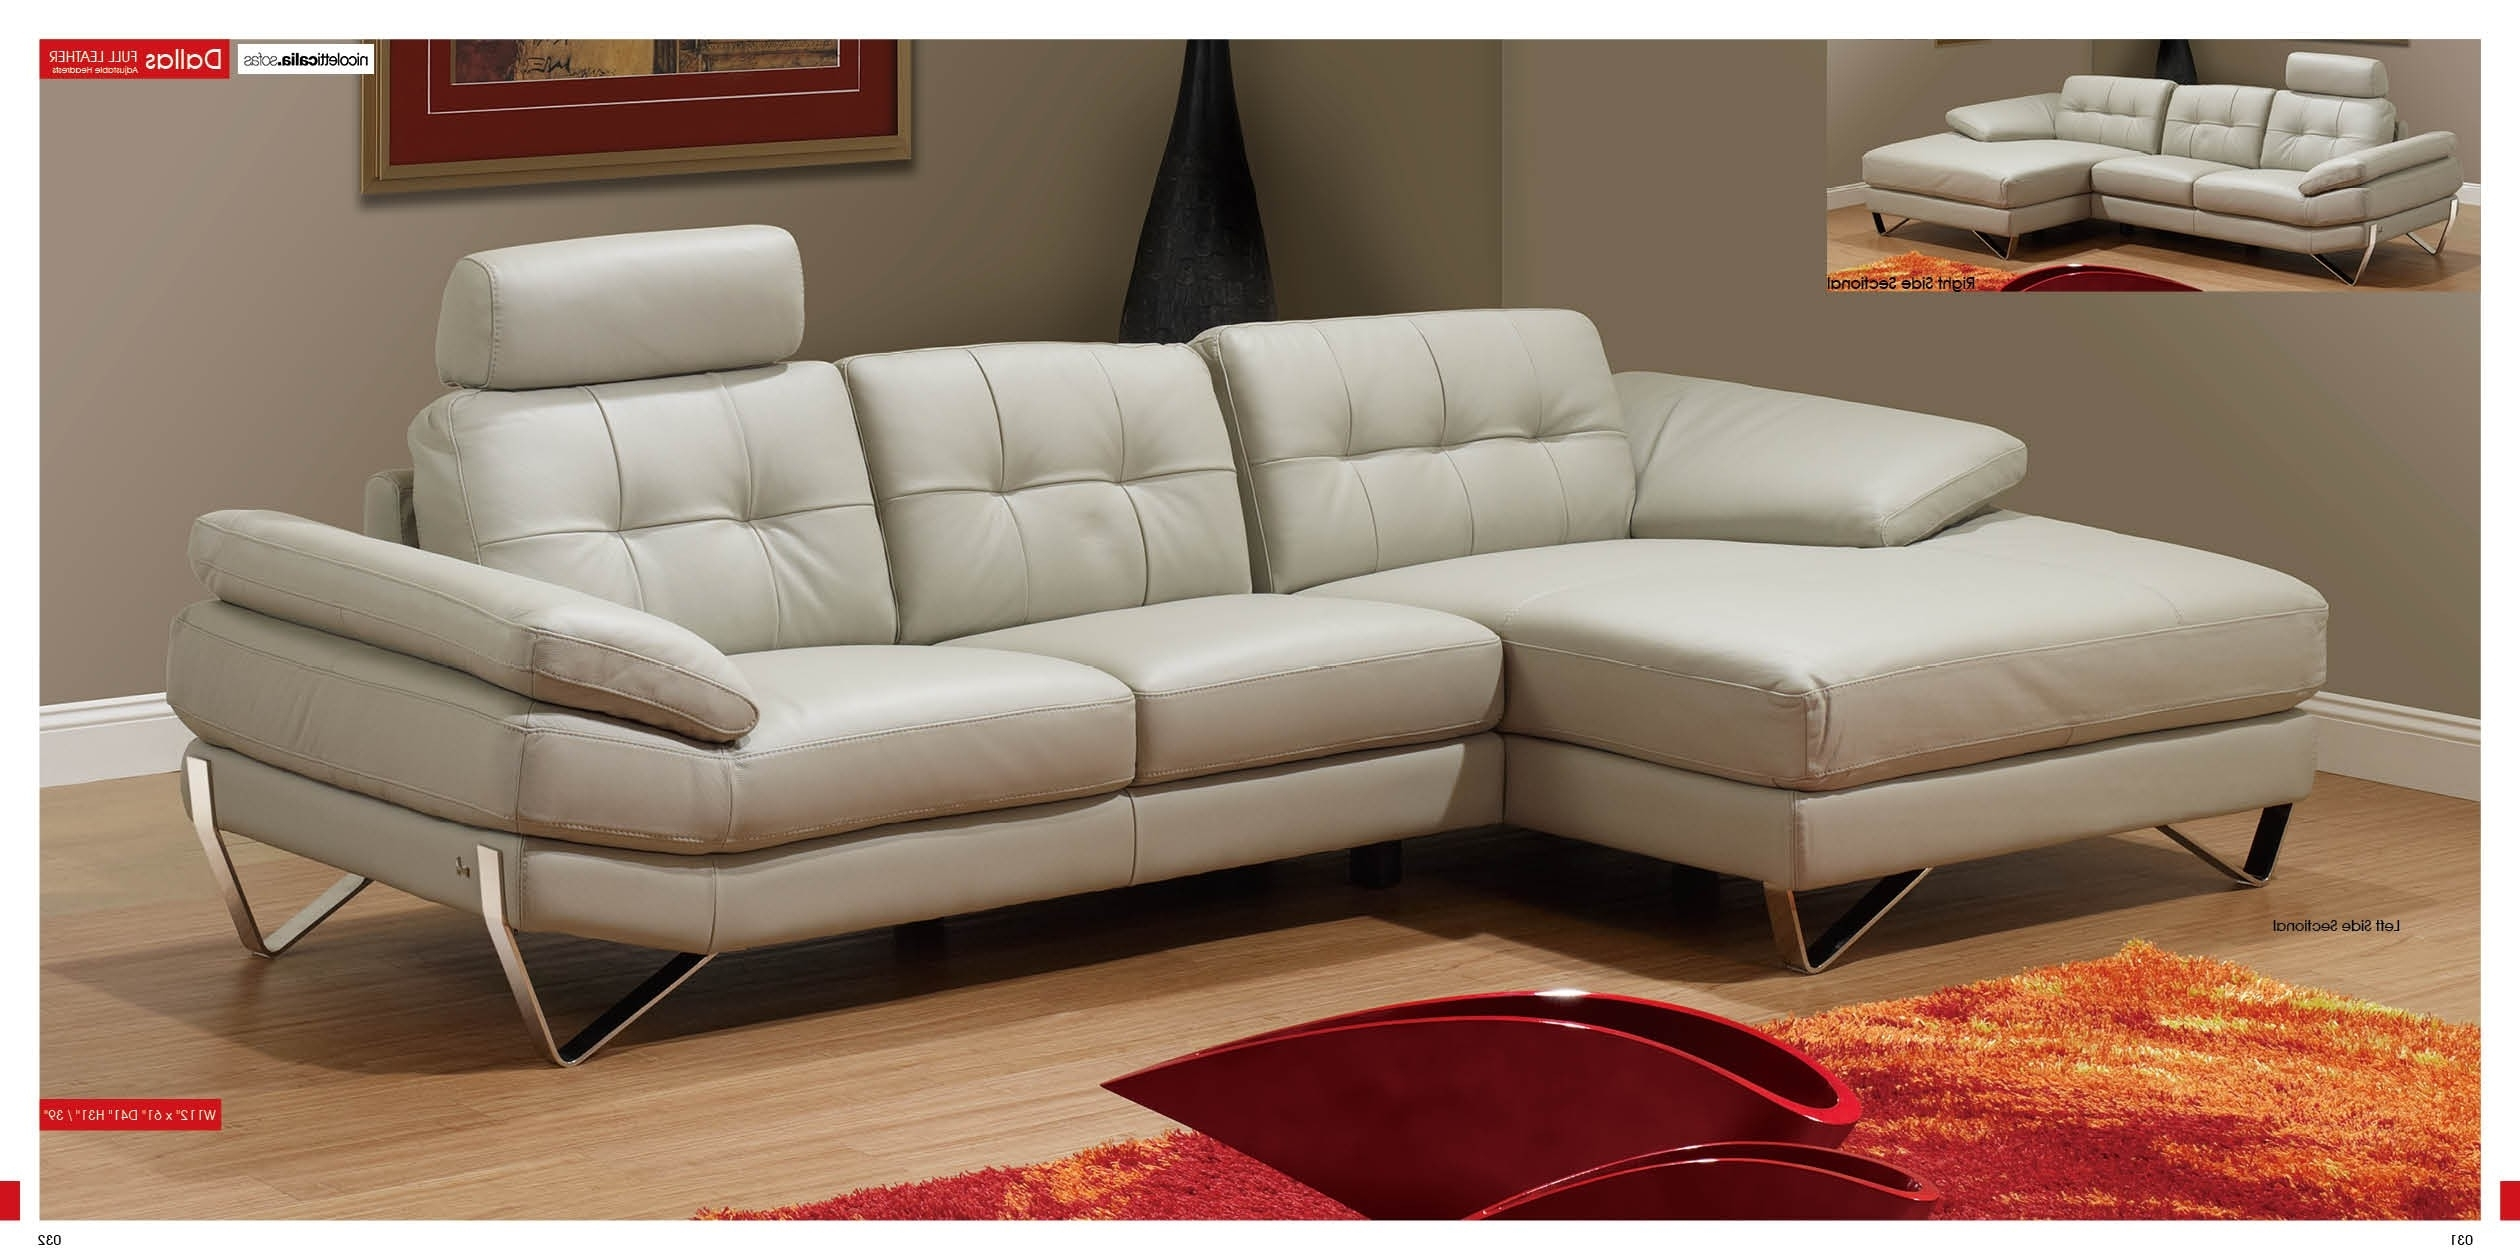 Furniture & Sofa: Glamorous Interior Furniture Designhavertys Throughout Most Recently Released Macon Ga Sectional Sofas (View 12 of 15)